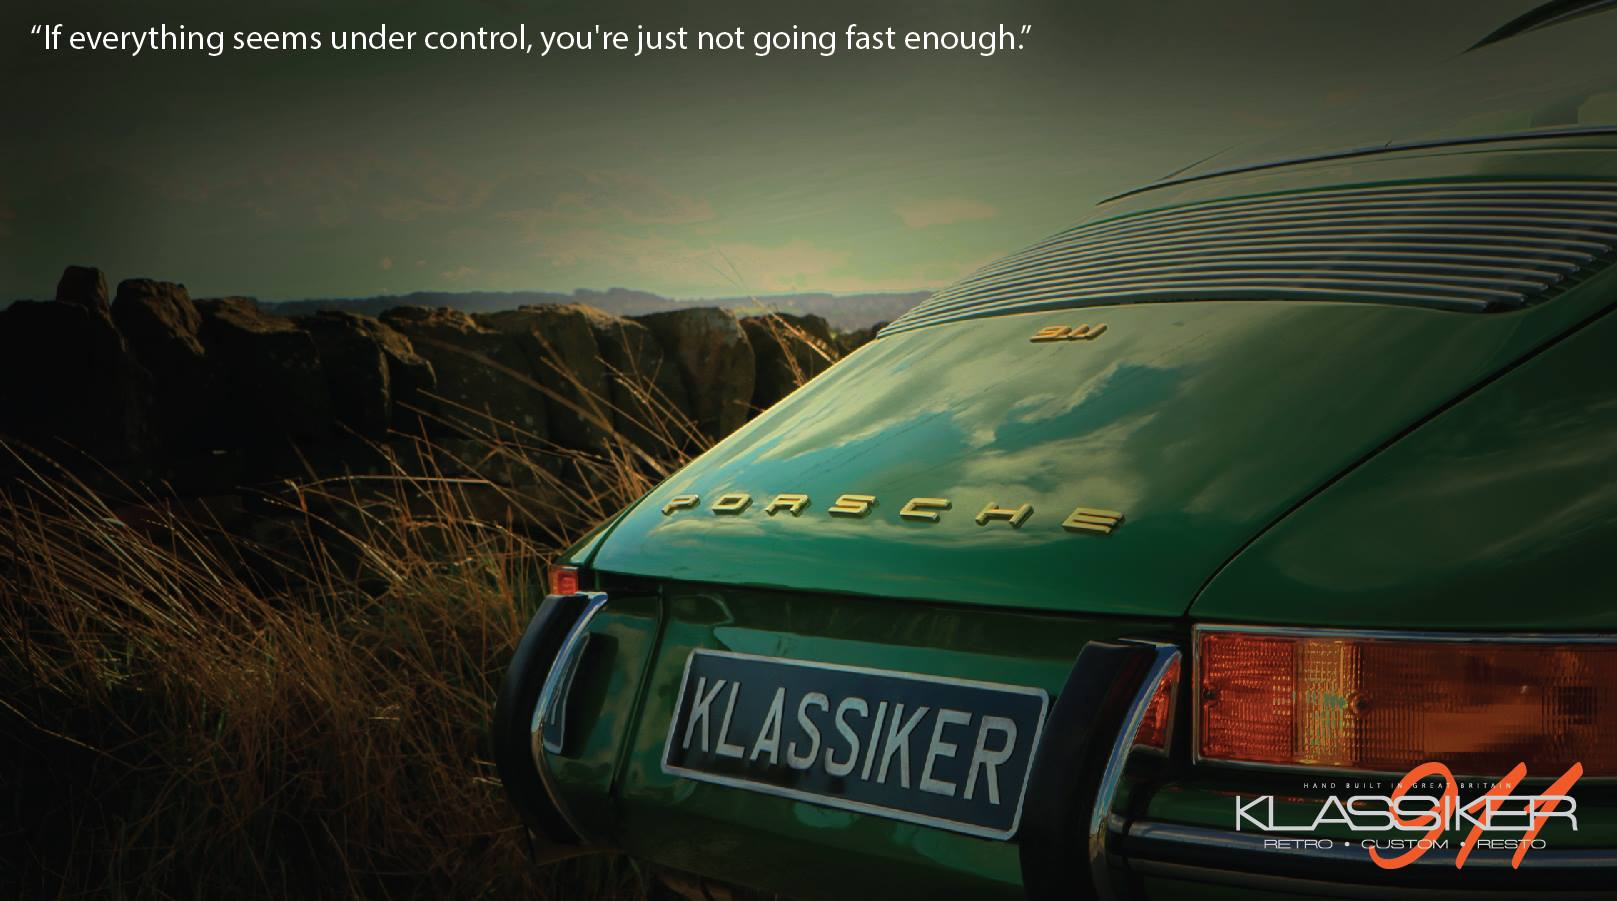 If Everything Seems Under Control, You're Just Not Going Fast Enough!